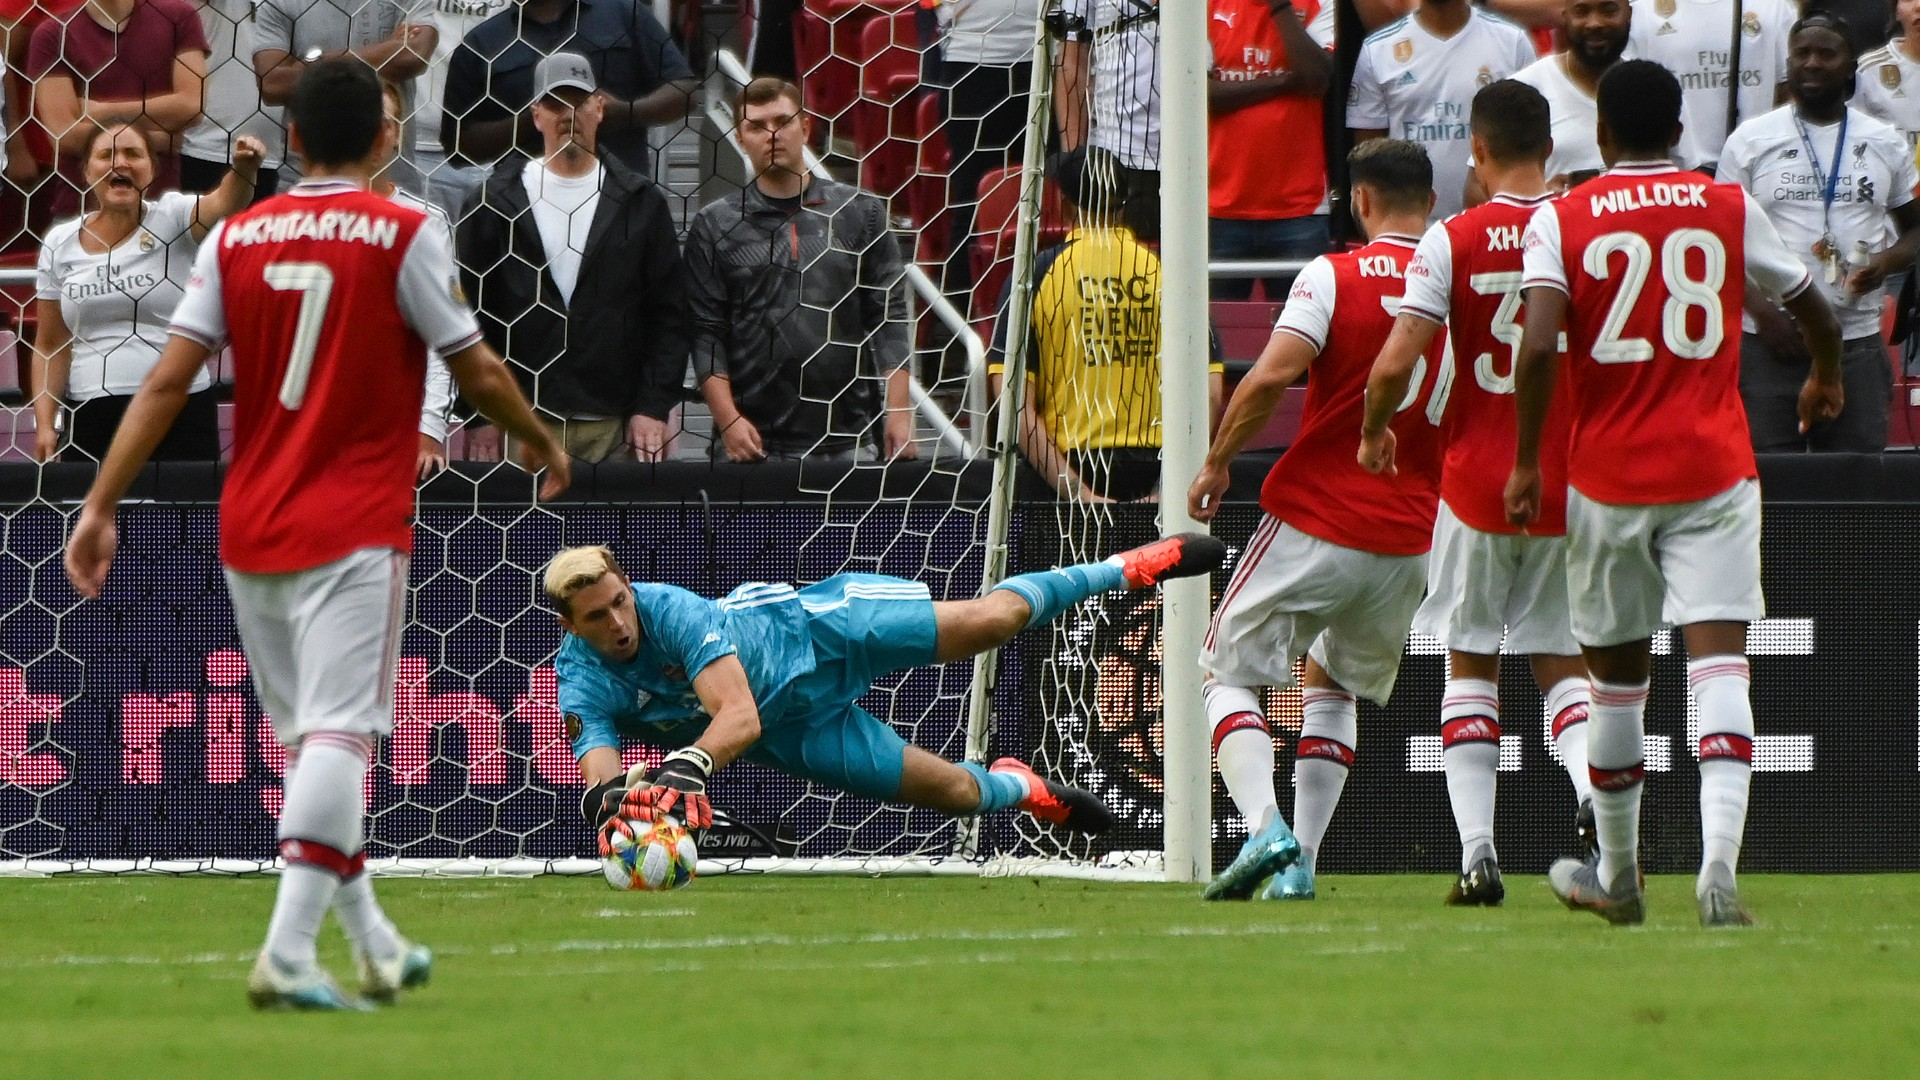 'I'm more than ready' - Martinez aims to use Europa League to oust Leno as Arsenal No.1